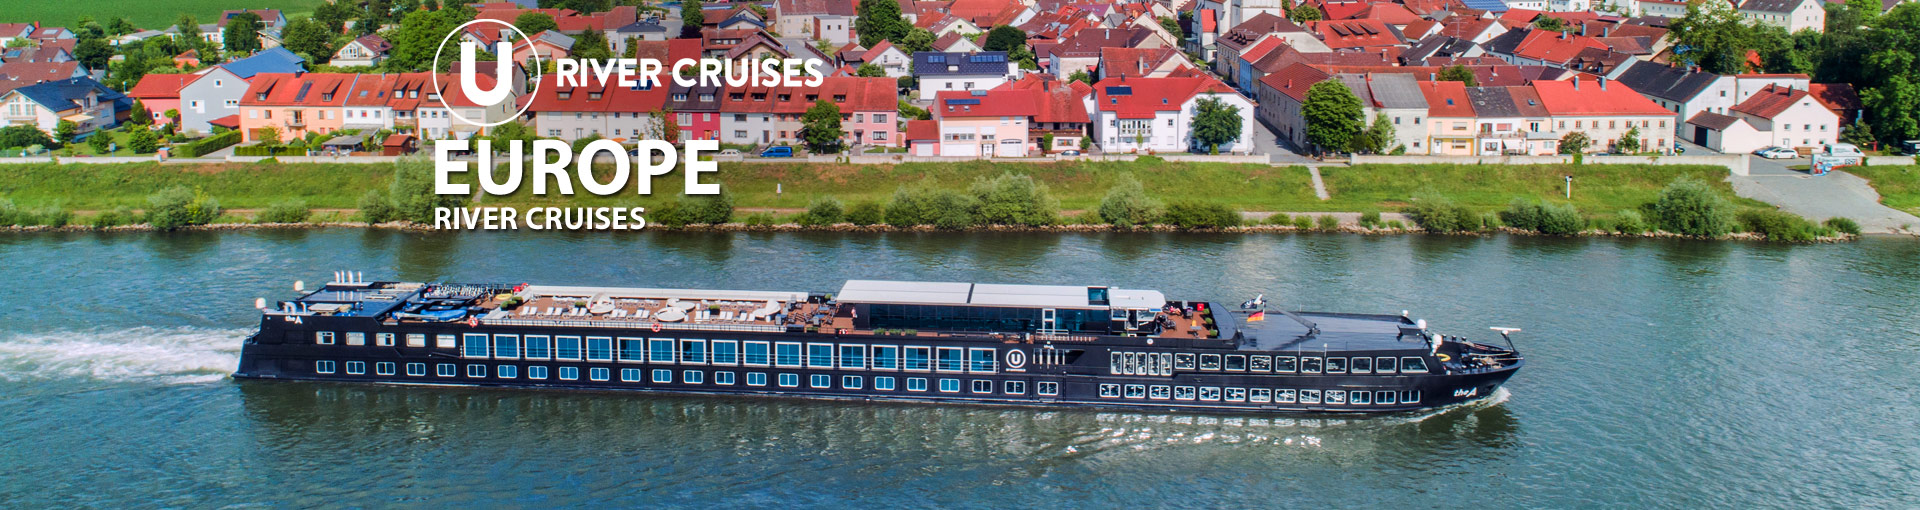 U by Uniworld Europe River Cruises